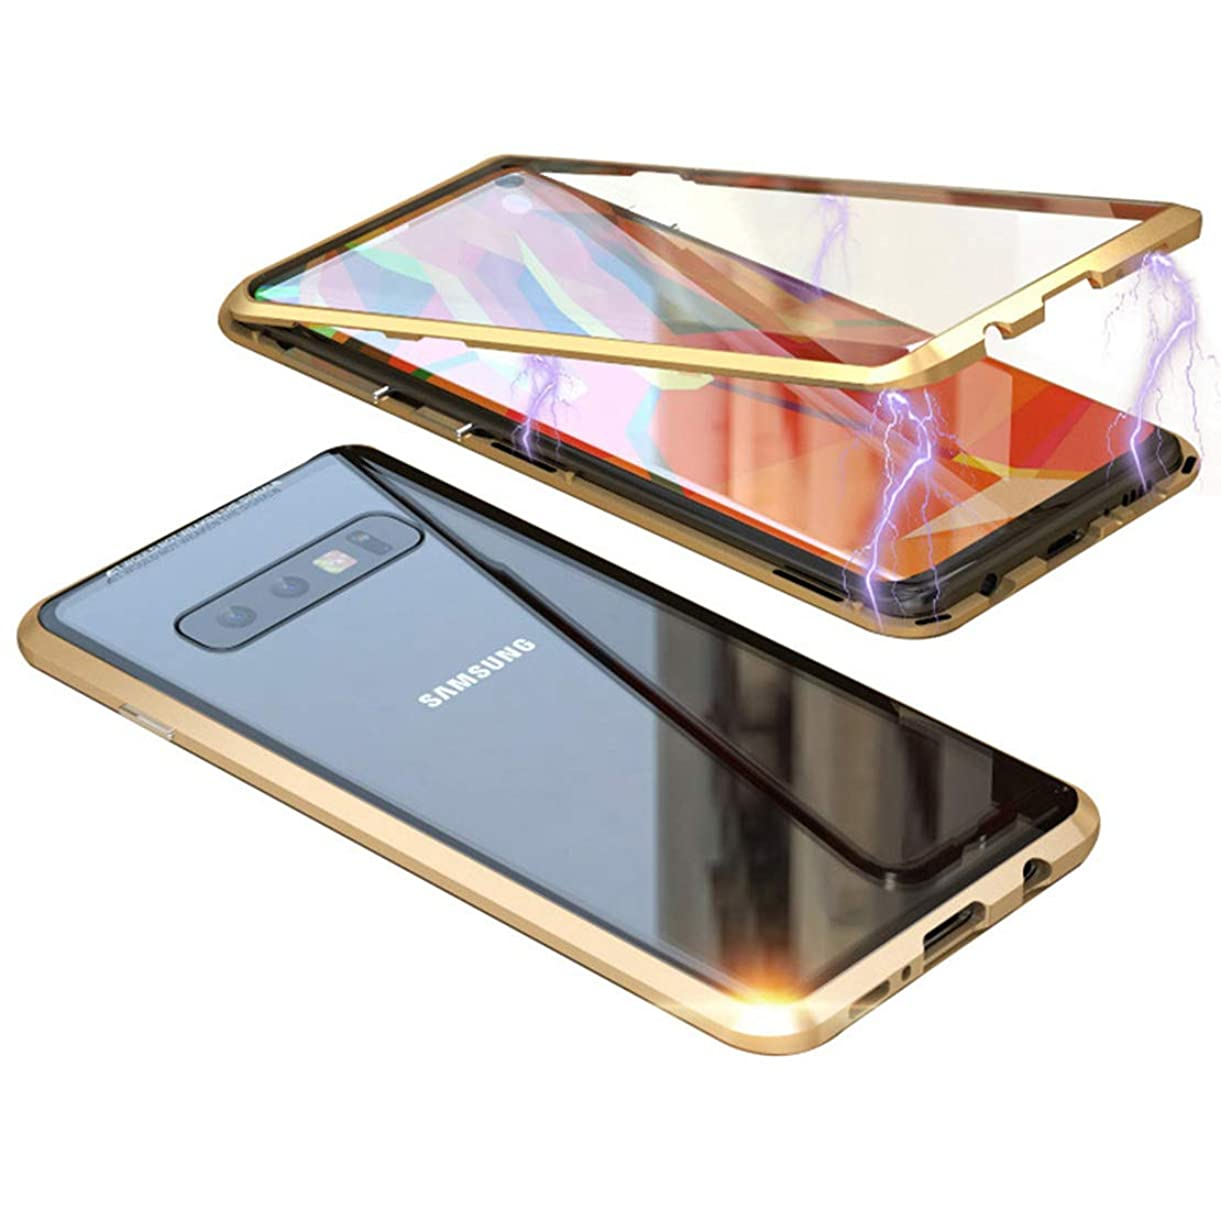 LANYOS Compatible Samsung Galaxy S10 Case, Magnetic Adsorption Metal Frame Clear Tempered Glass Back Cover with Built-in Magnet Flip with a Screen Protector (Gold) pudhg2582